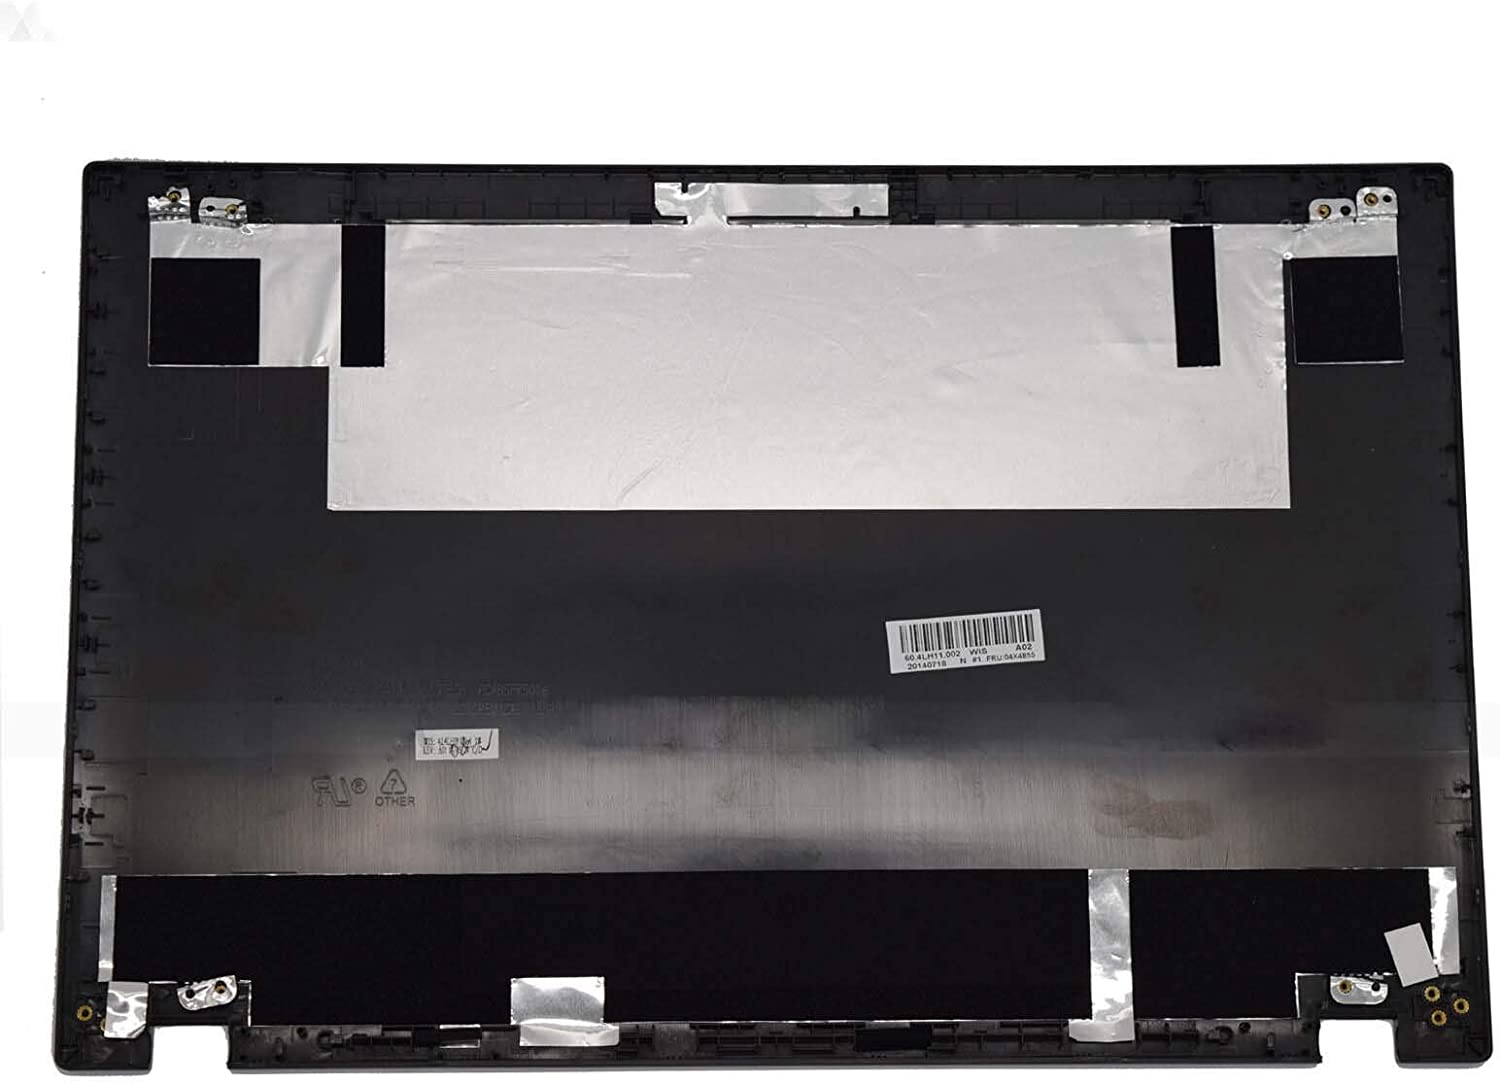 Compatible Replacement for Lenovo Thinkpad L540 Top LCD Back Cover Rear Lid FHD 04X4855 60.4LH11.00